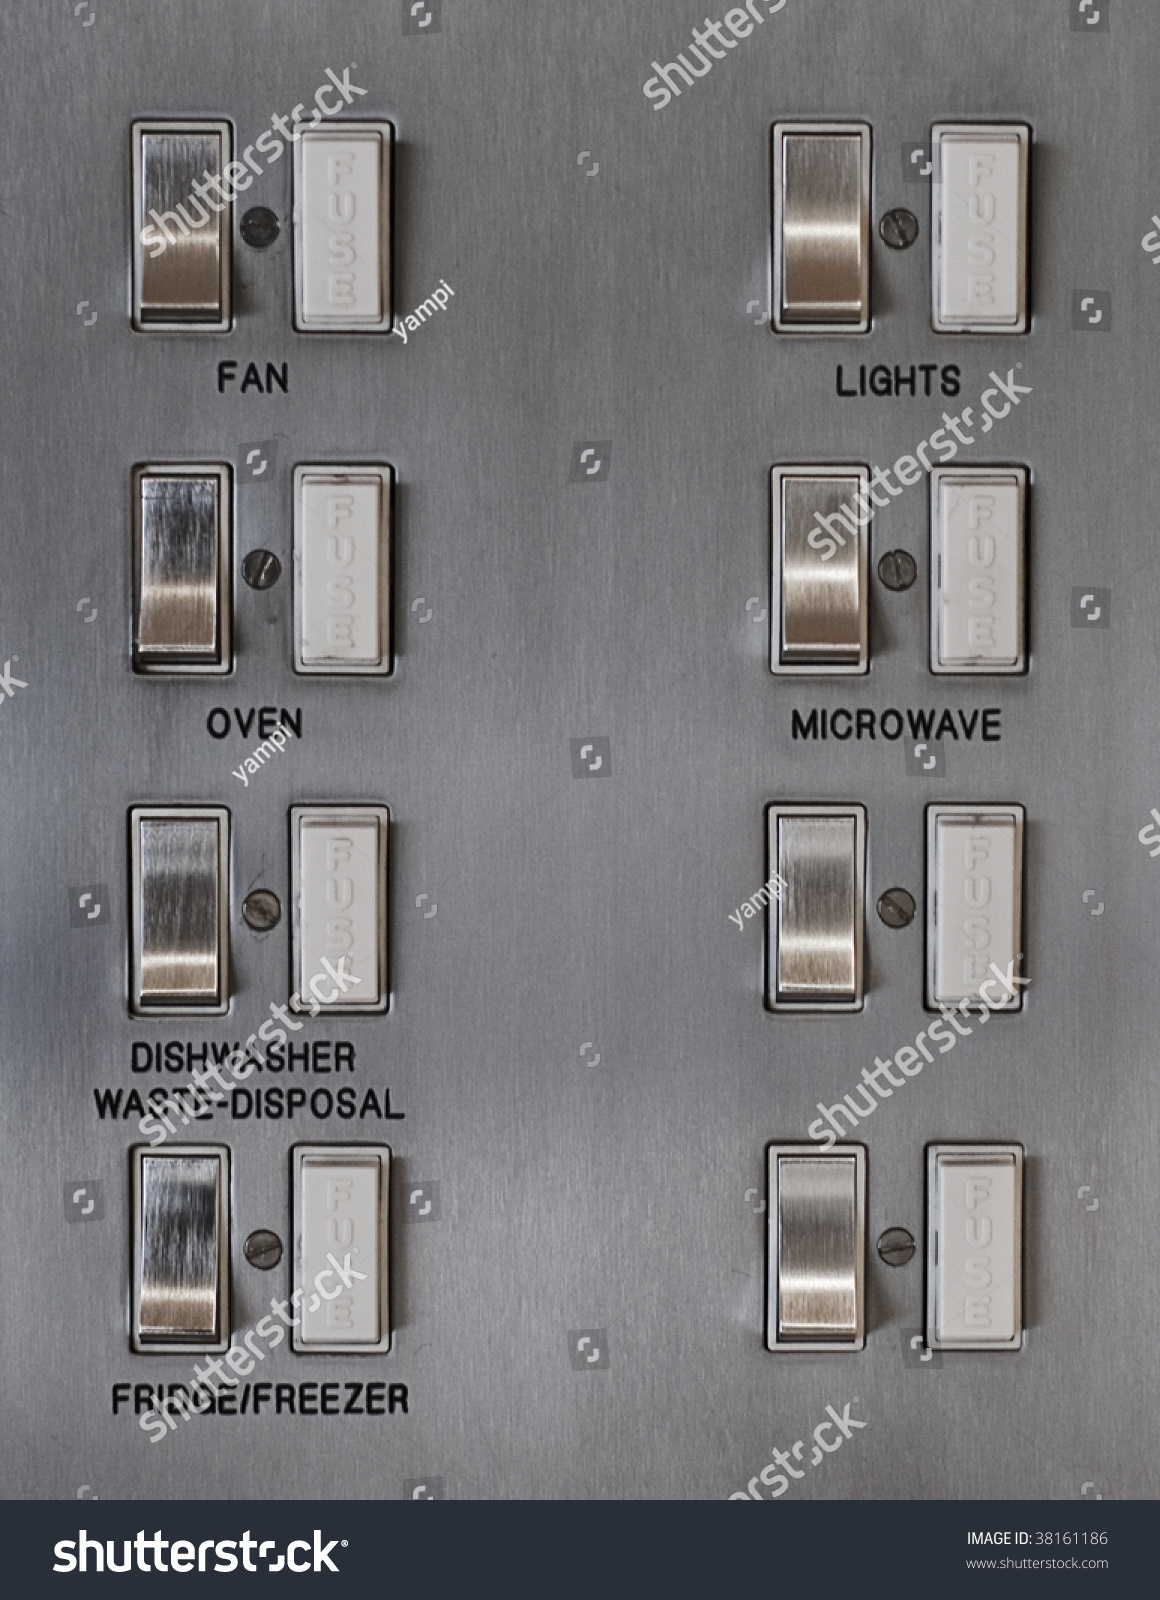 kitchen fuse box switch board stock photo shutterstock kitchen fuse box and switch board